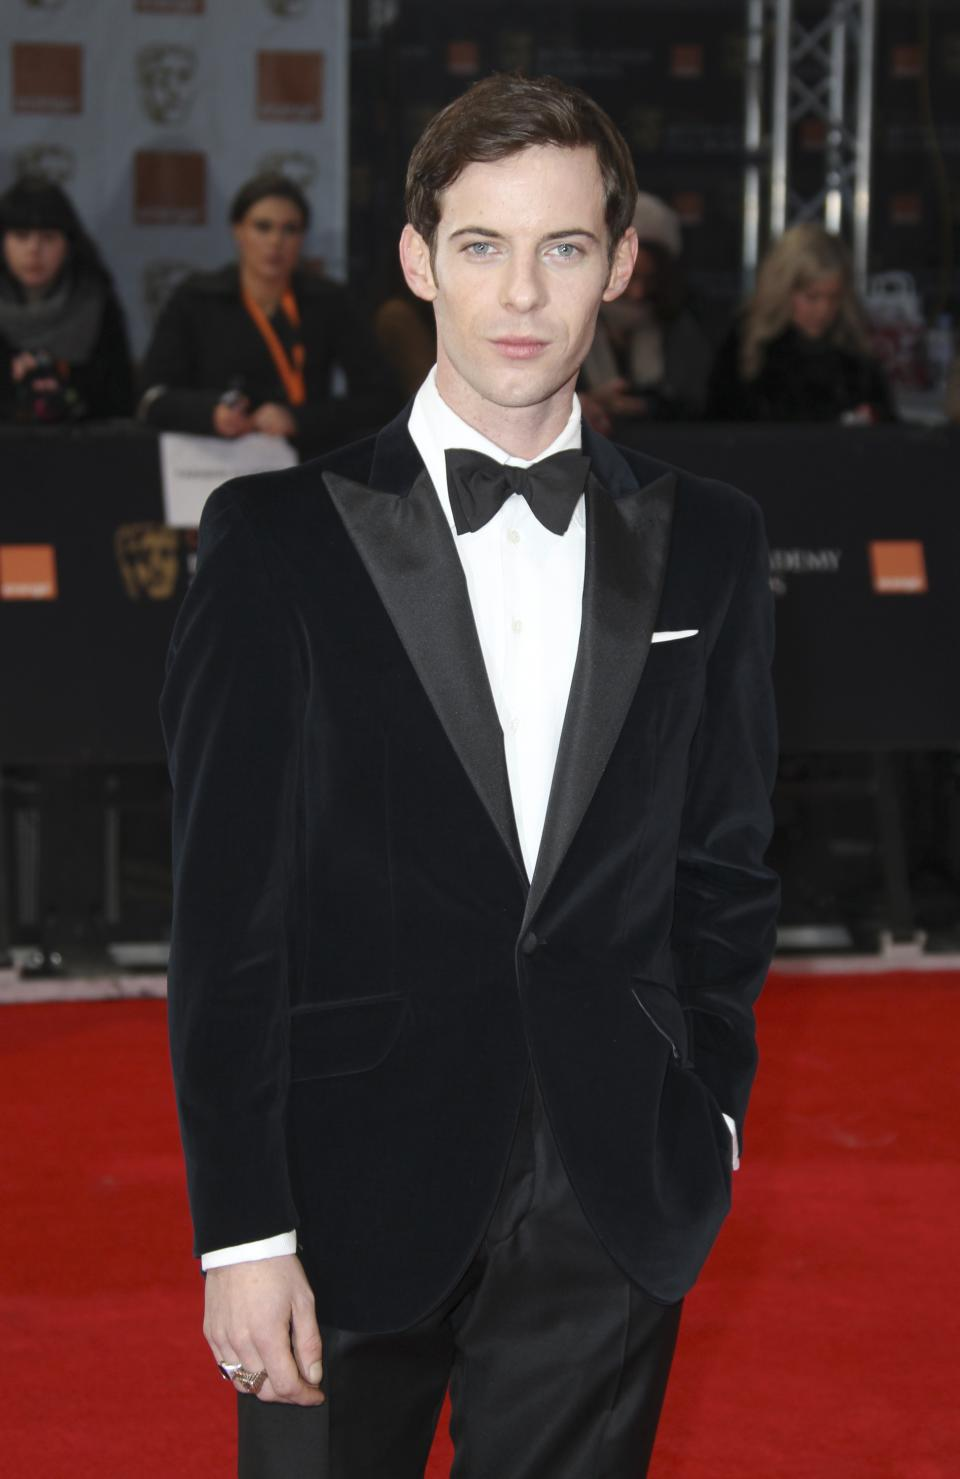 Actor Luke Treadaway arrives for the BAFTA Film Awards 2012, at The Royal Opera House in London, Sunday, Feb. 12, 2012. (AP Photo/Joel Ryan)